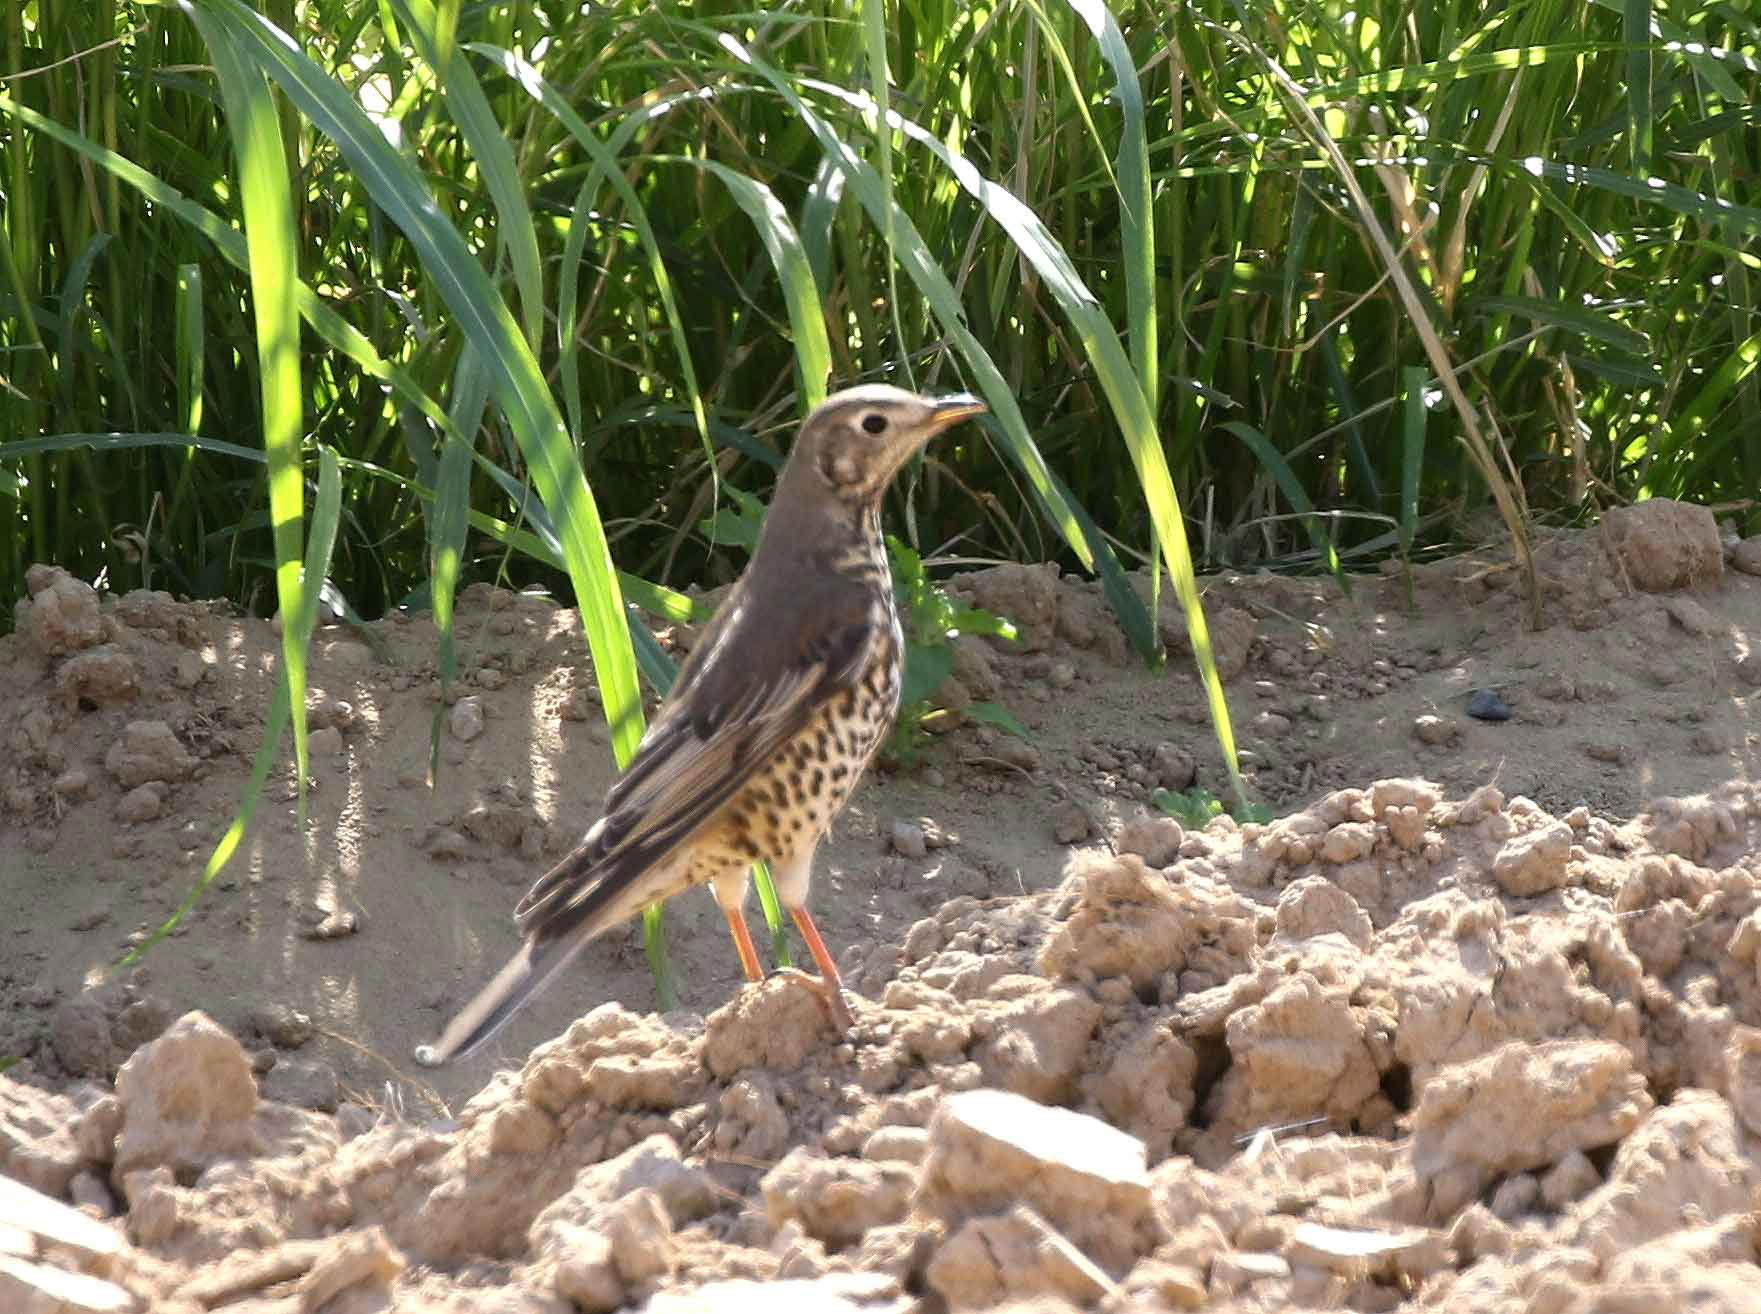 Mistle Thrush on the ground